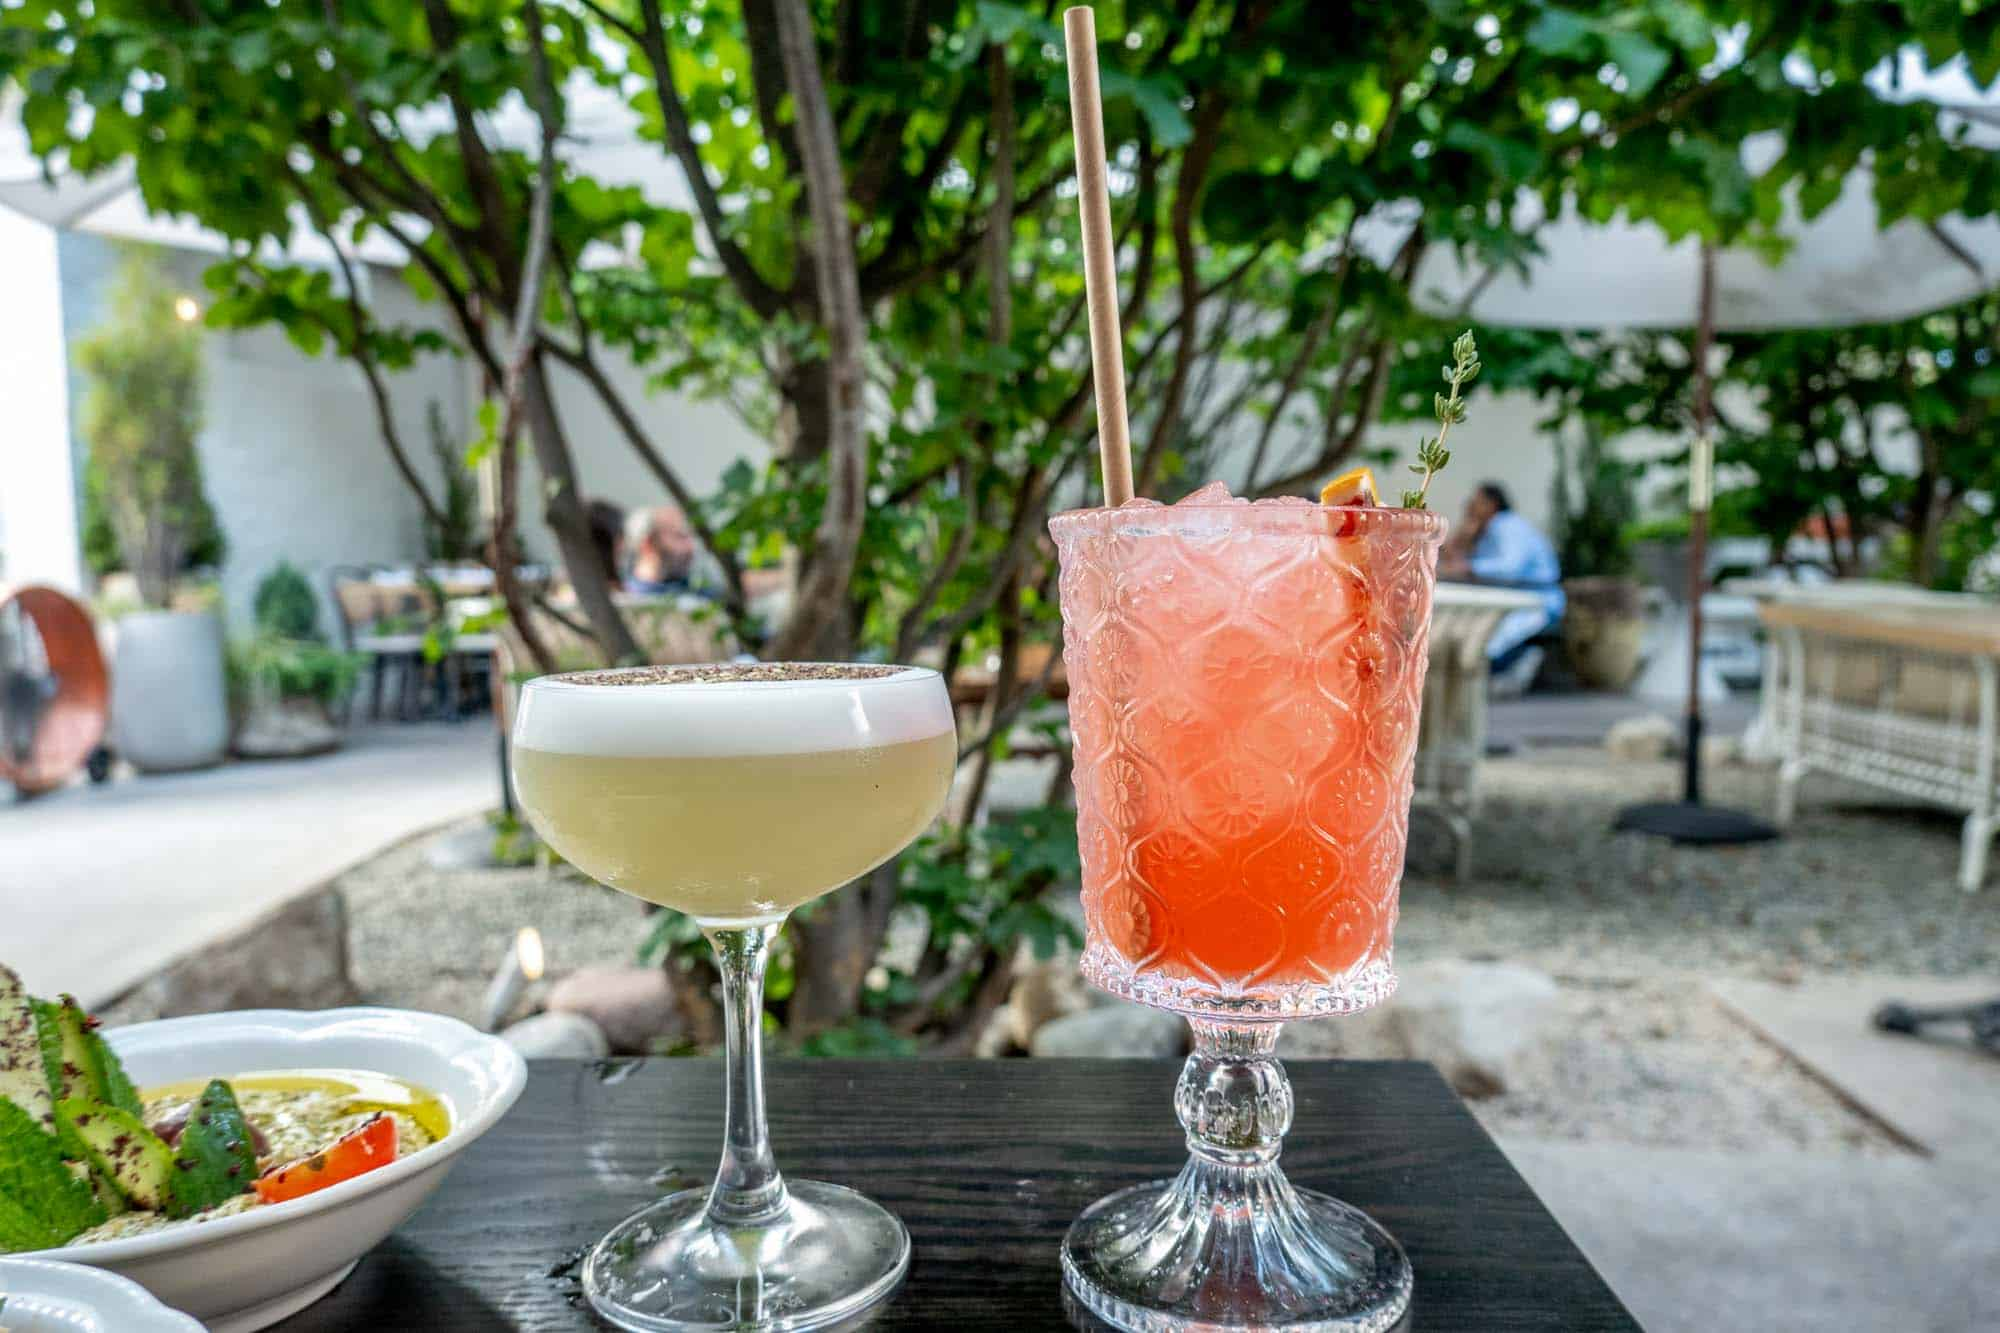 Cocktails on a table in a garden